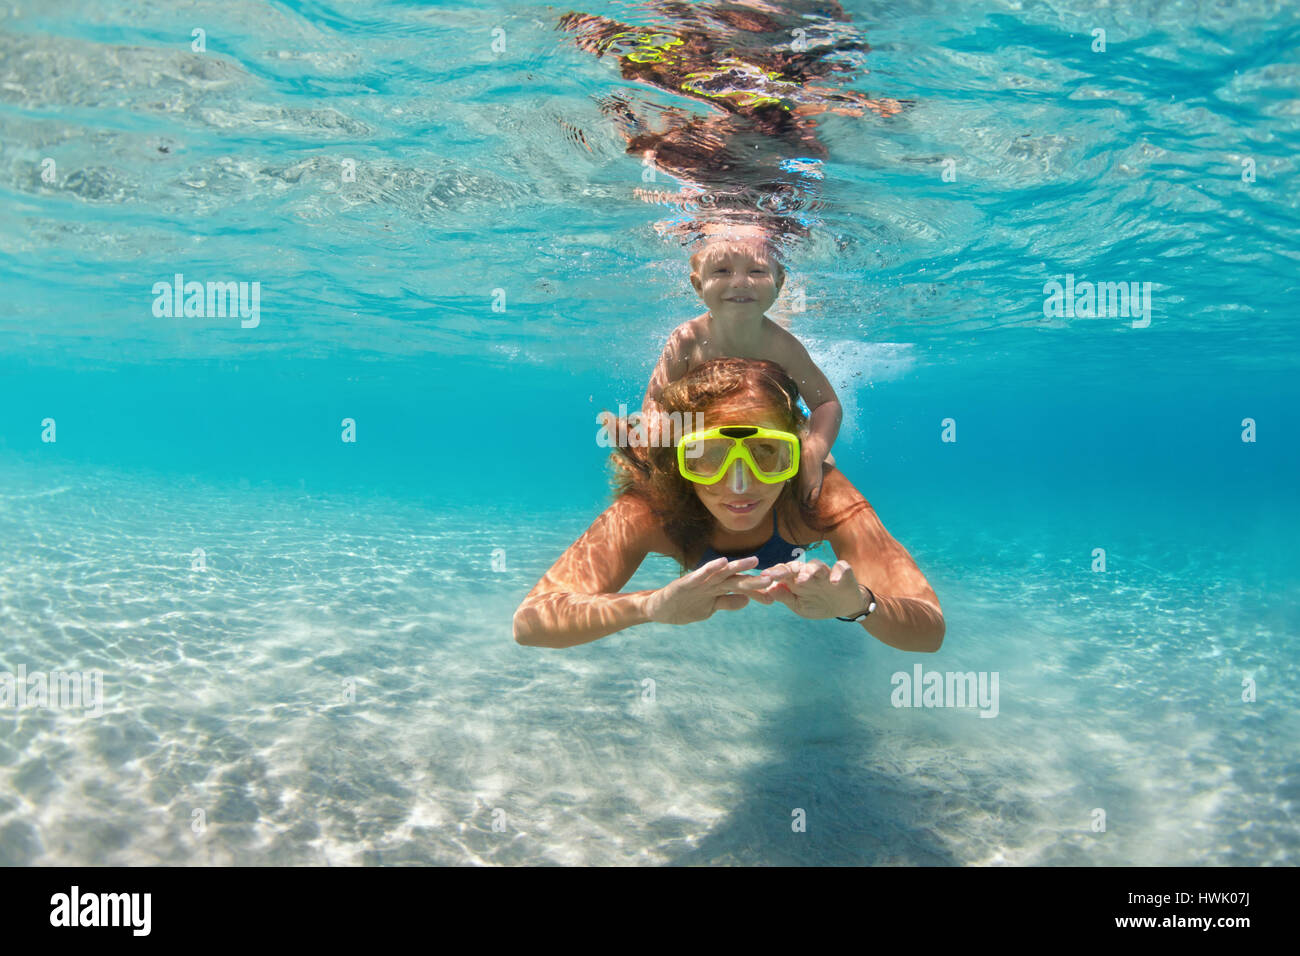 Happy active family - mother, baby son snorkel and dive underwater in sea pool. People lifestyle, water sport outdoor - Stock Image